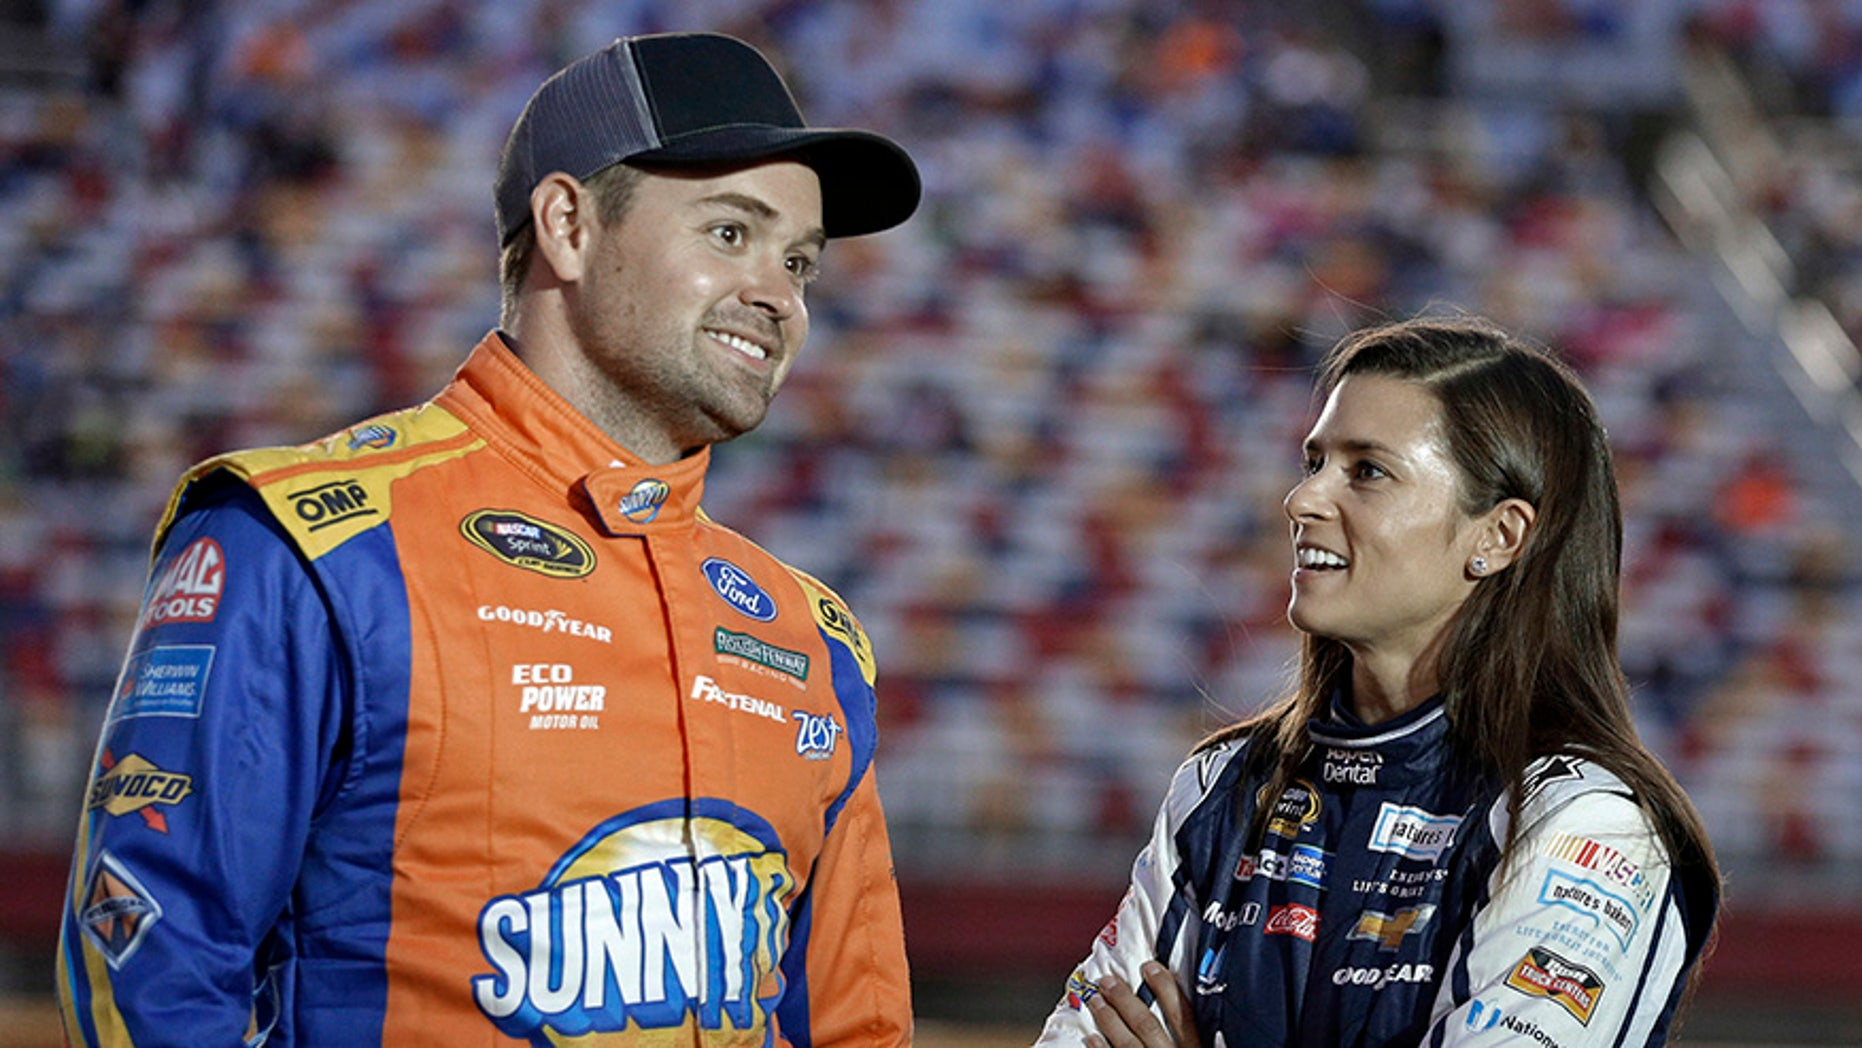 "FILE - In this Oct. 6, 2016, file photo, Danica Patrick, right, talks with Ricky Stenhouse Jr, before qualifying for Saturday's NASCAR Sprint Cup series auto race at Charlotte Motor Speedway in Charlotte, N.C. Danica Patrick and Ricky Stenhouse Jr. have ended their nearly five-year relationship. A spokeswoman for Patrick confirmed to The Associated Press on Monday, Dec. 18, 2017,  that the race car drivers ""are no longer in a relationship."" (AP Photo/Chuck Burton, File)"